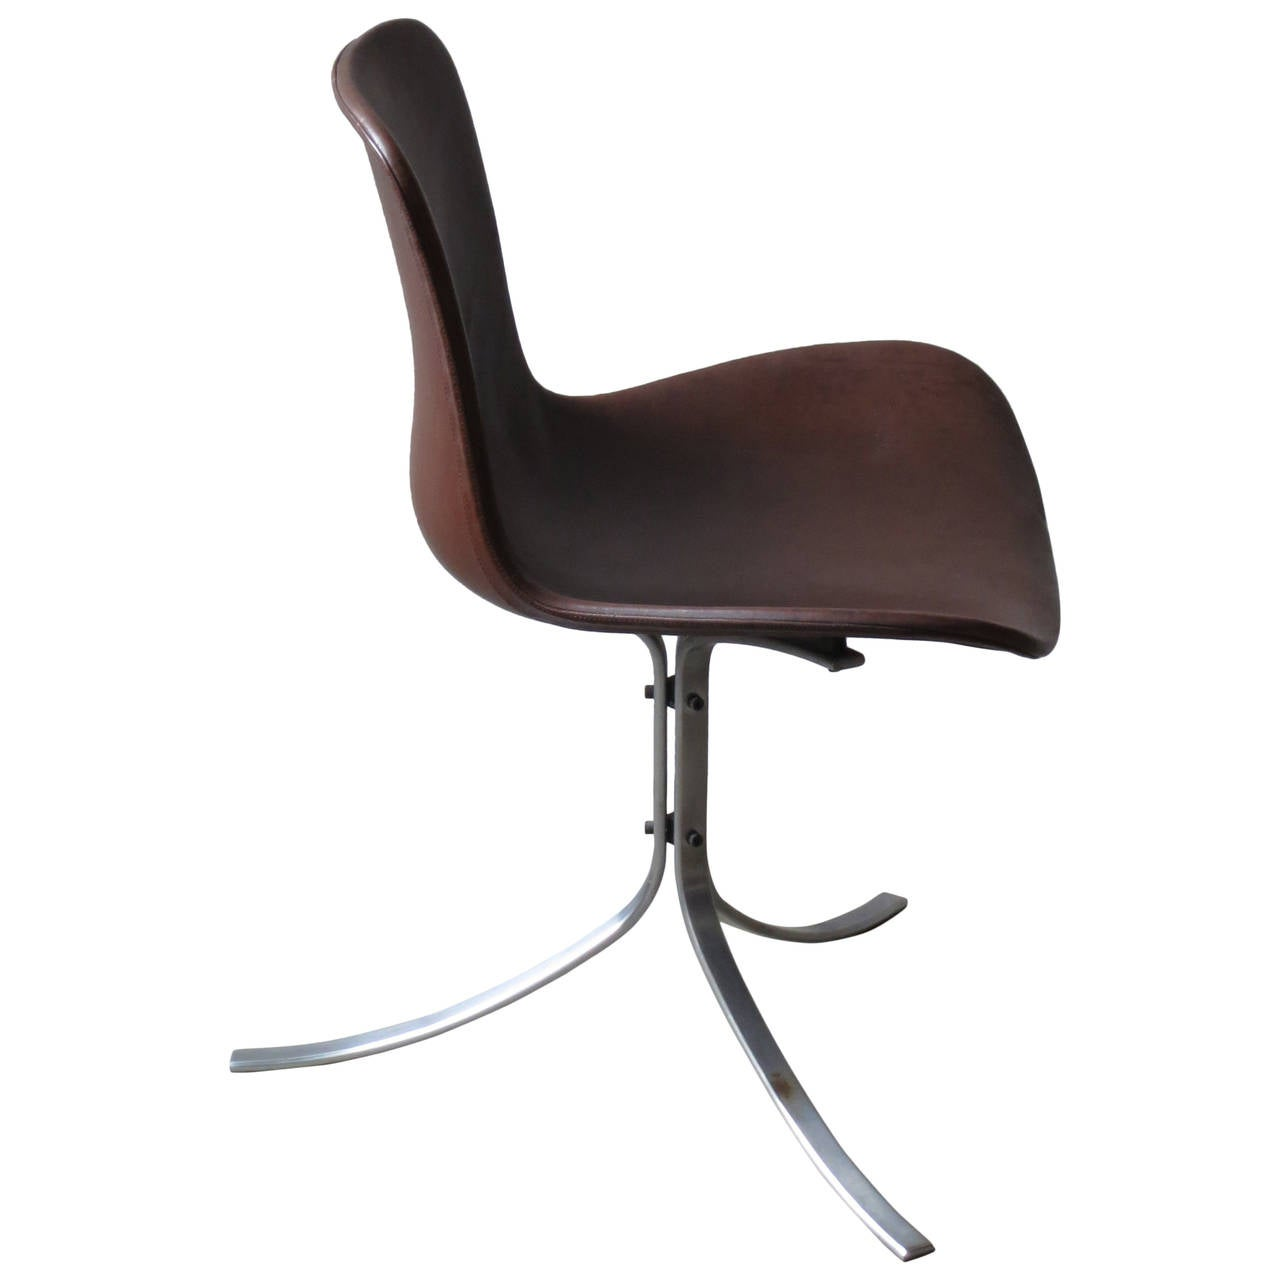 PK-9 Chair by Poul Kjærholm in patinated brown leather 1